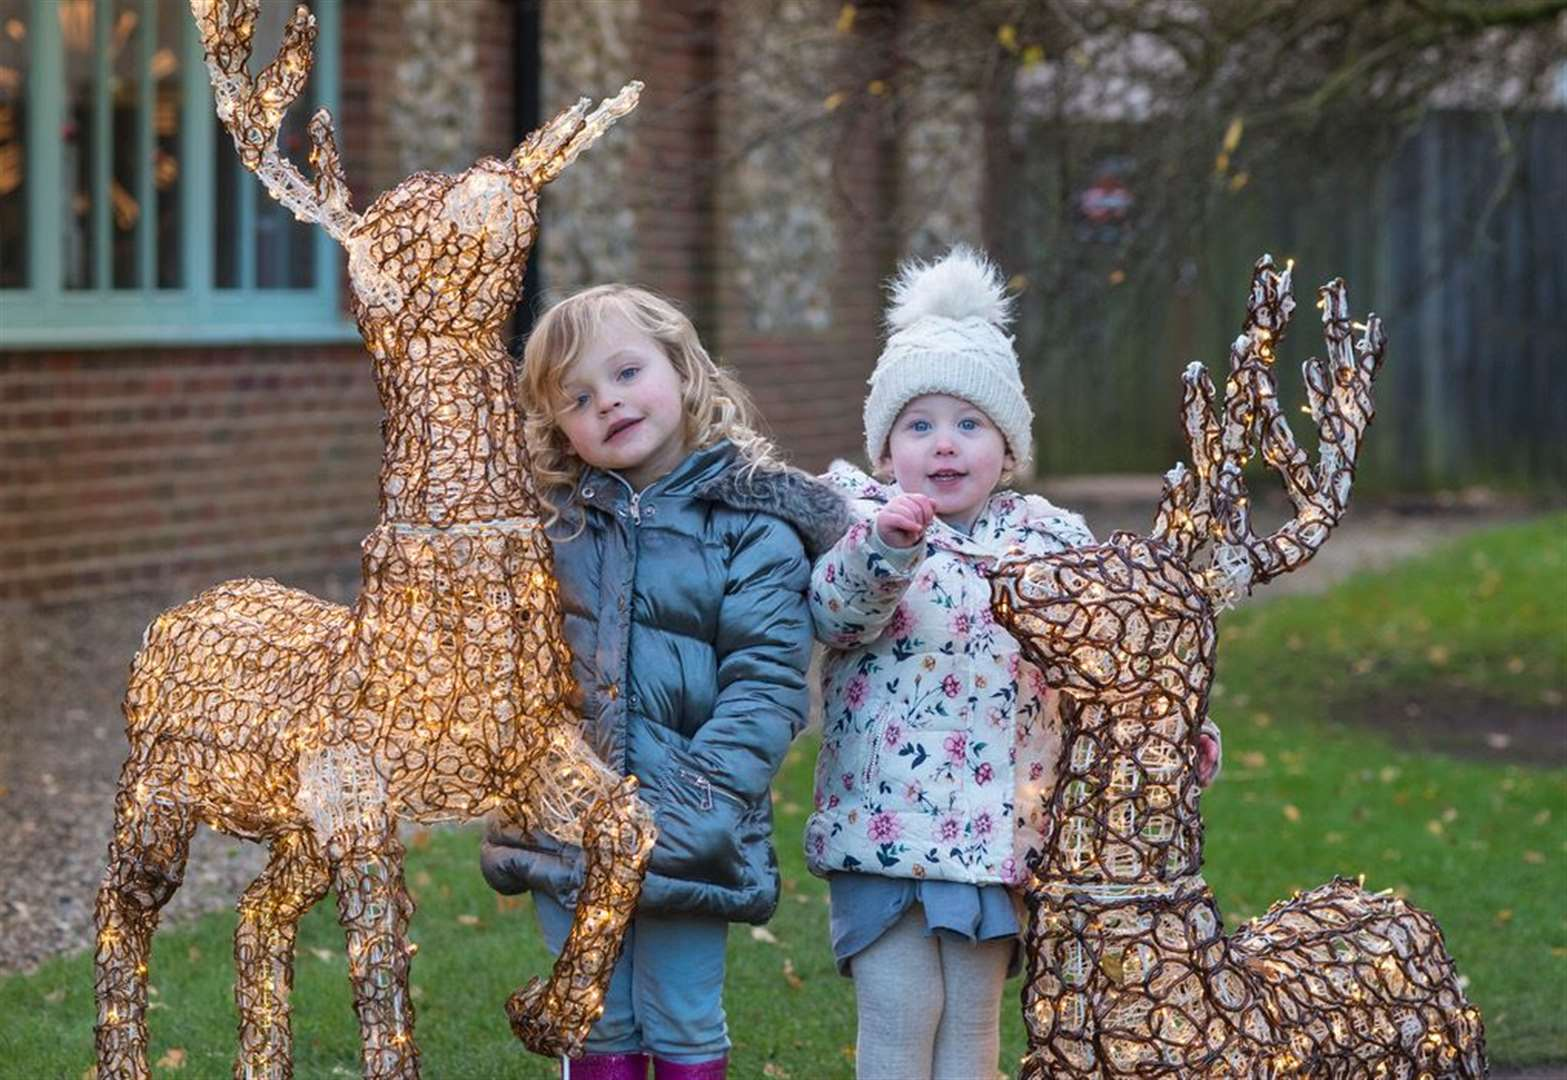 Pensthorpe enters the Christmas spirit theme